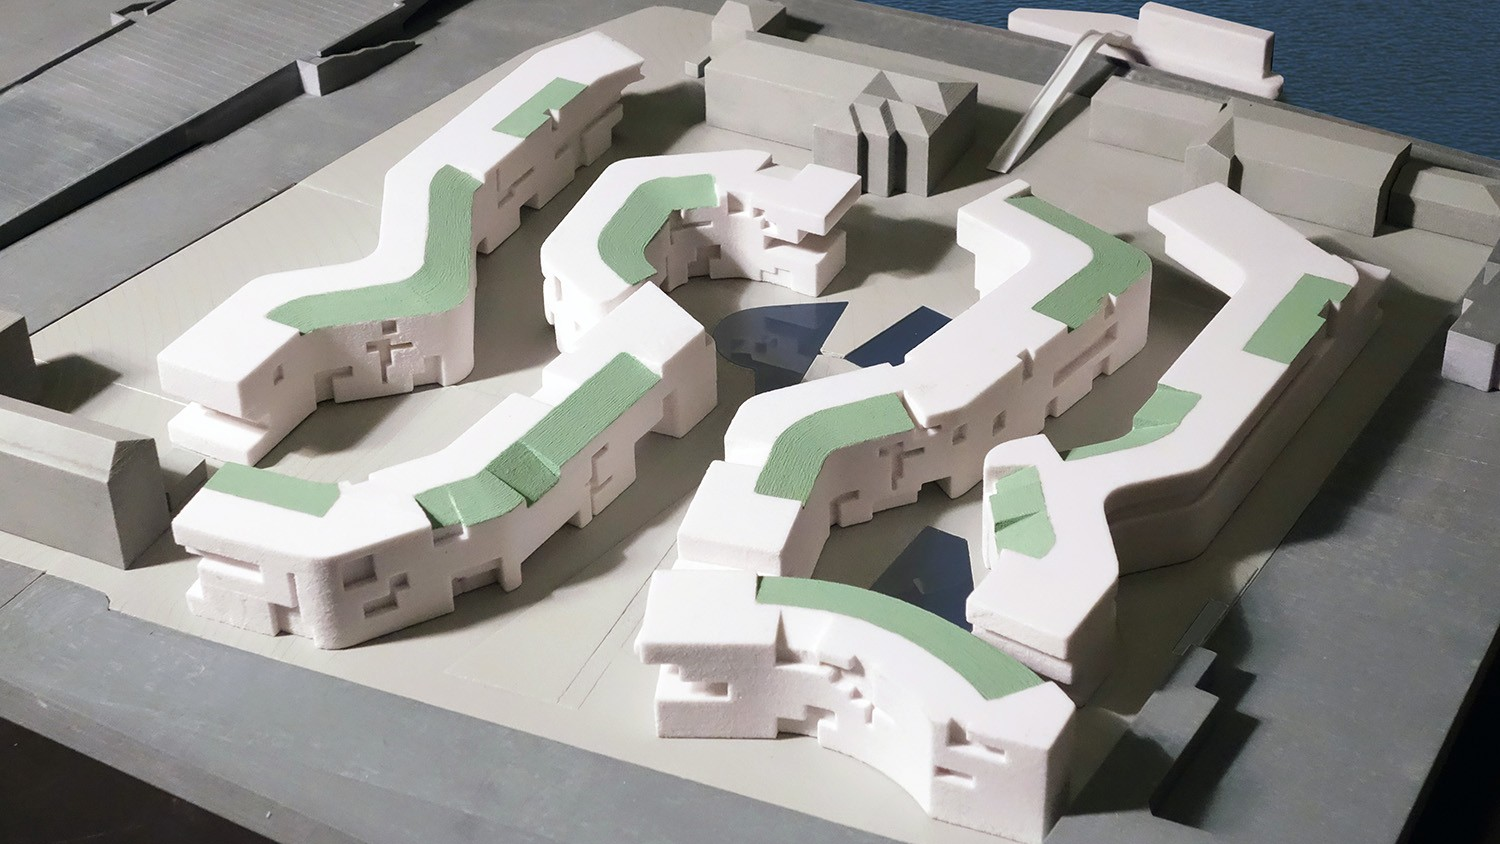 https://stevenholl.sfo2.digitaloceanspaces.com/uploads/projects/project-images/StevenHollArchitects_MGI_SHA-Moscow-SpatialRibbons_1_WH.jpg